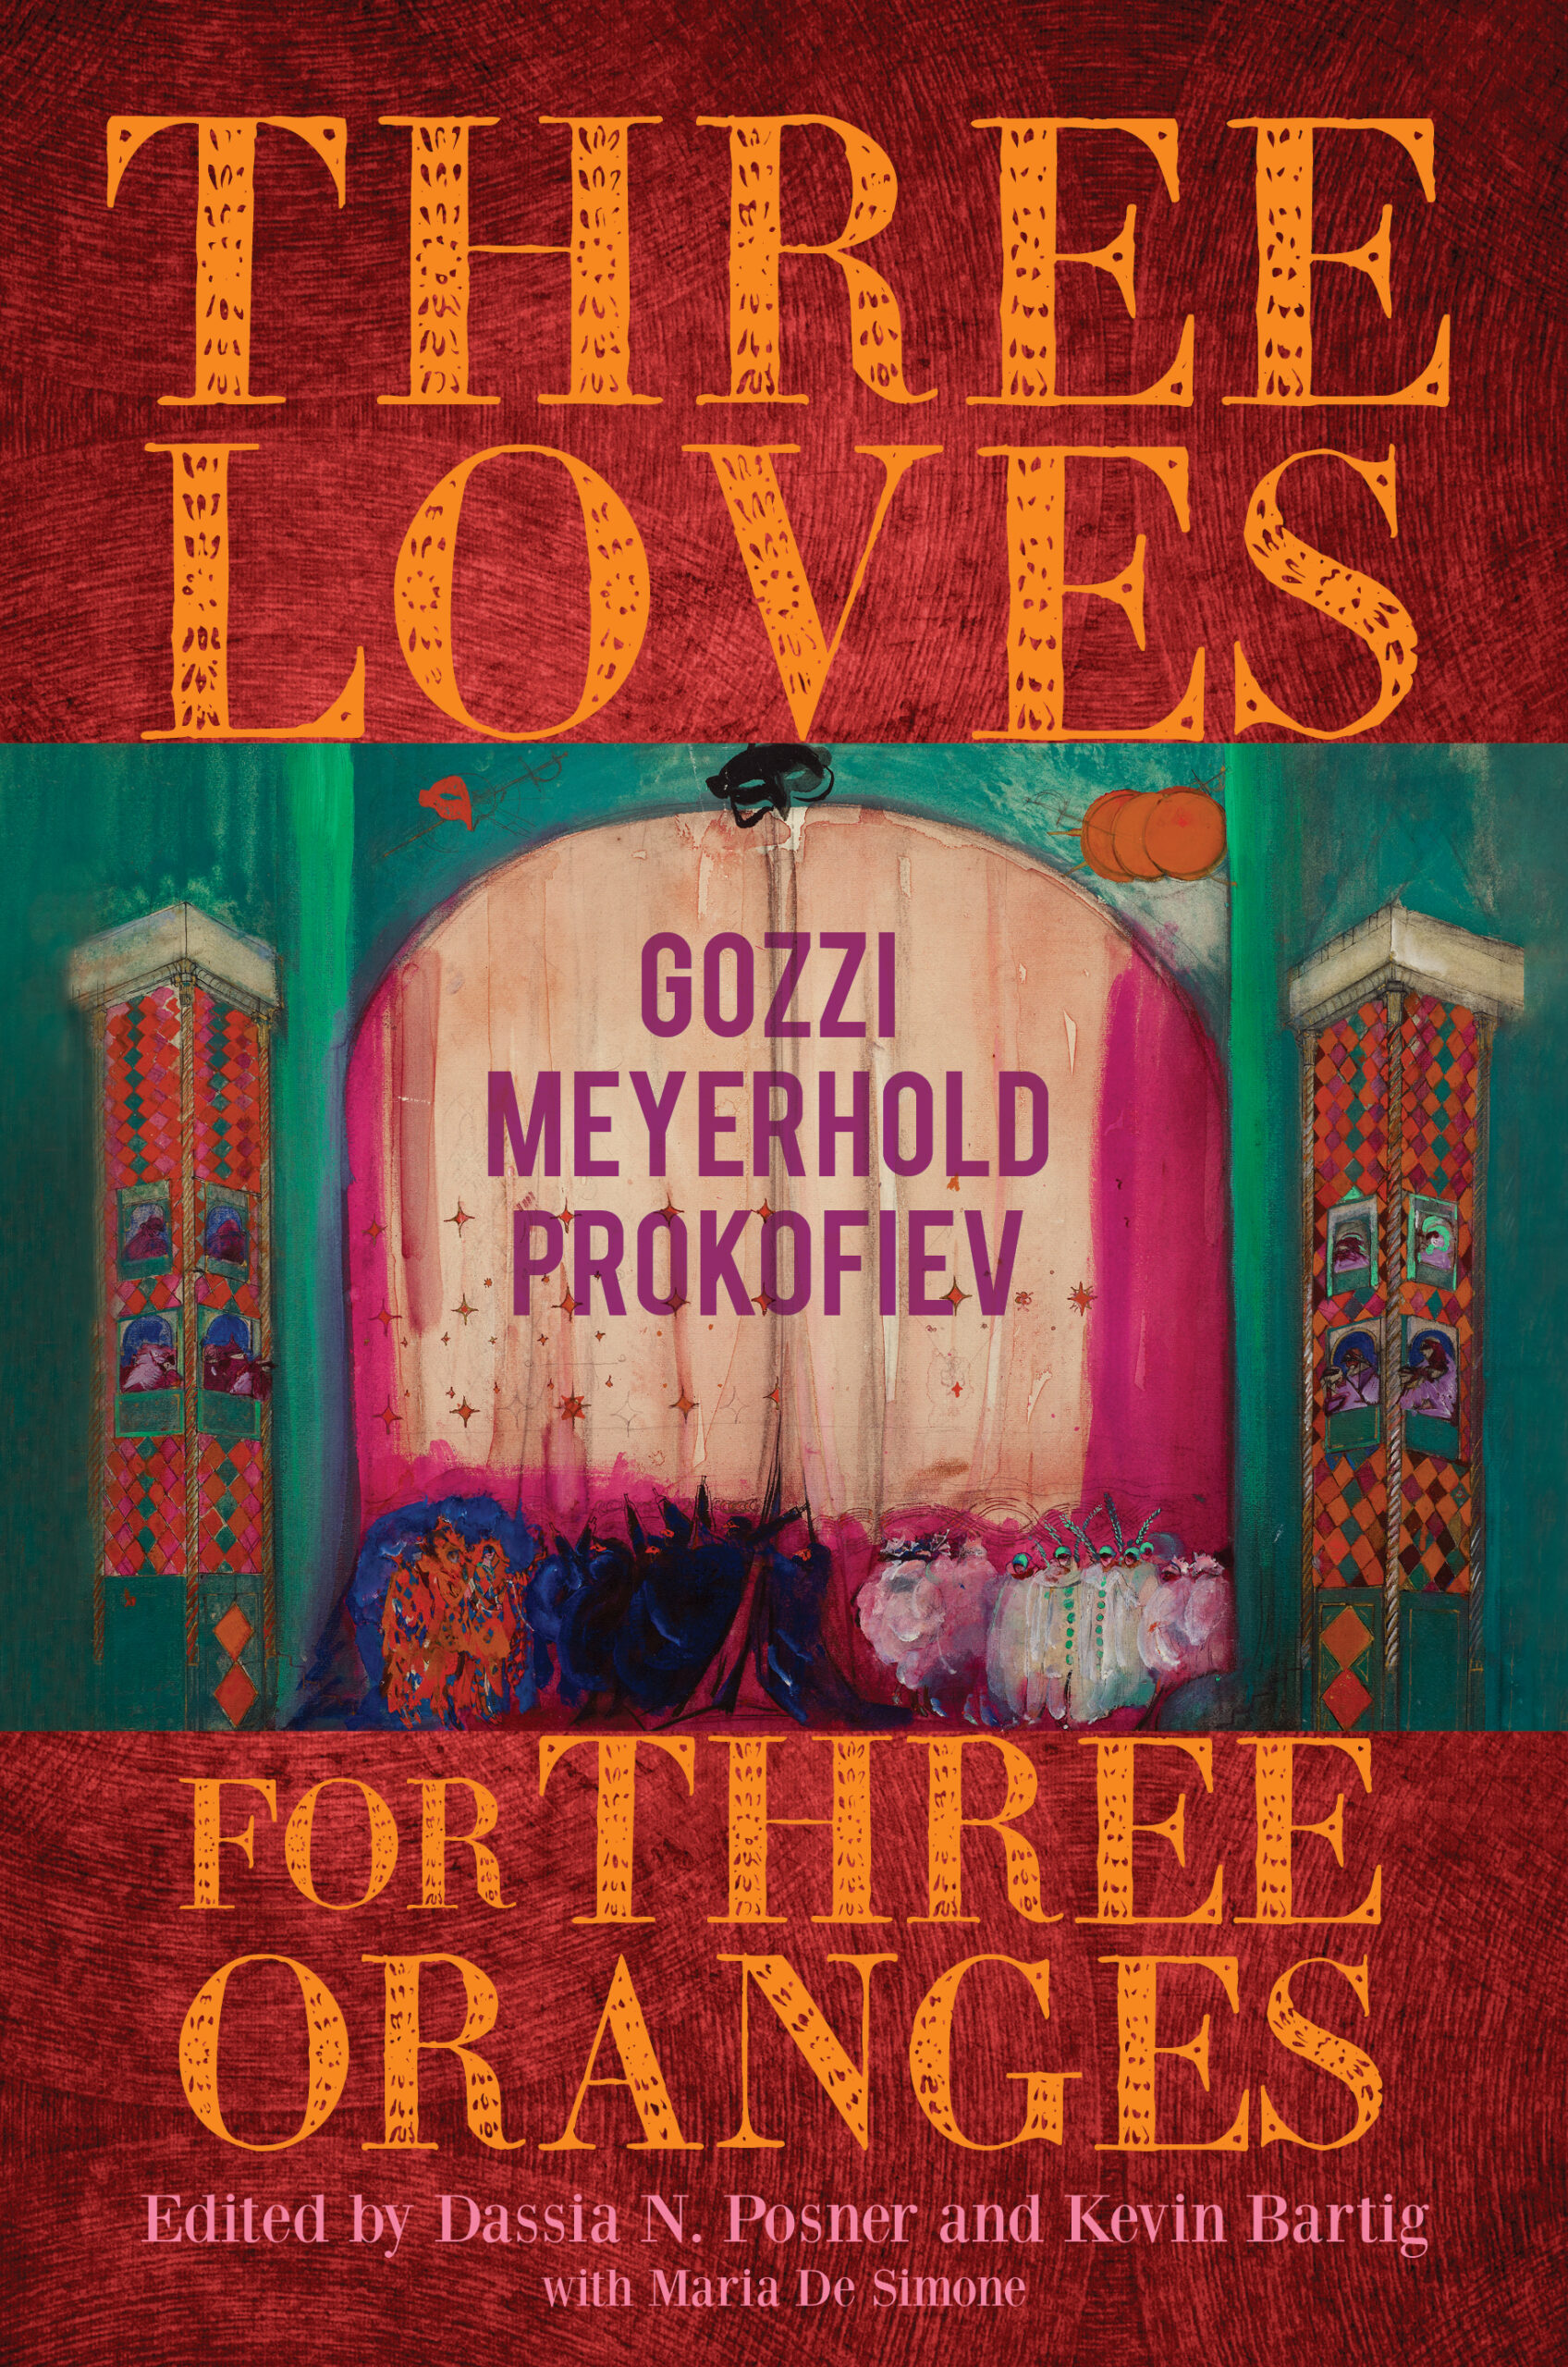 Three Loves for Three Oranges Edited by Dassia N. Posner and Kevin Bartig